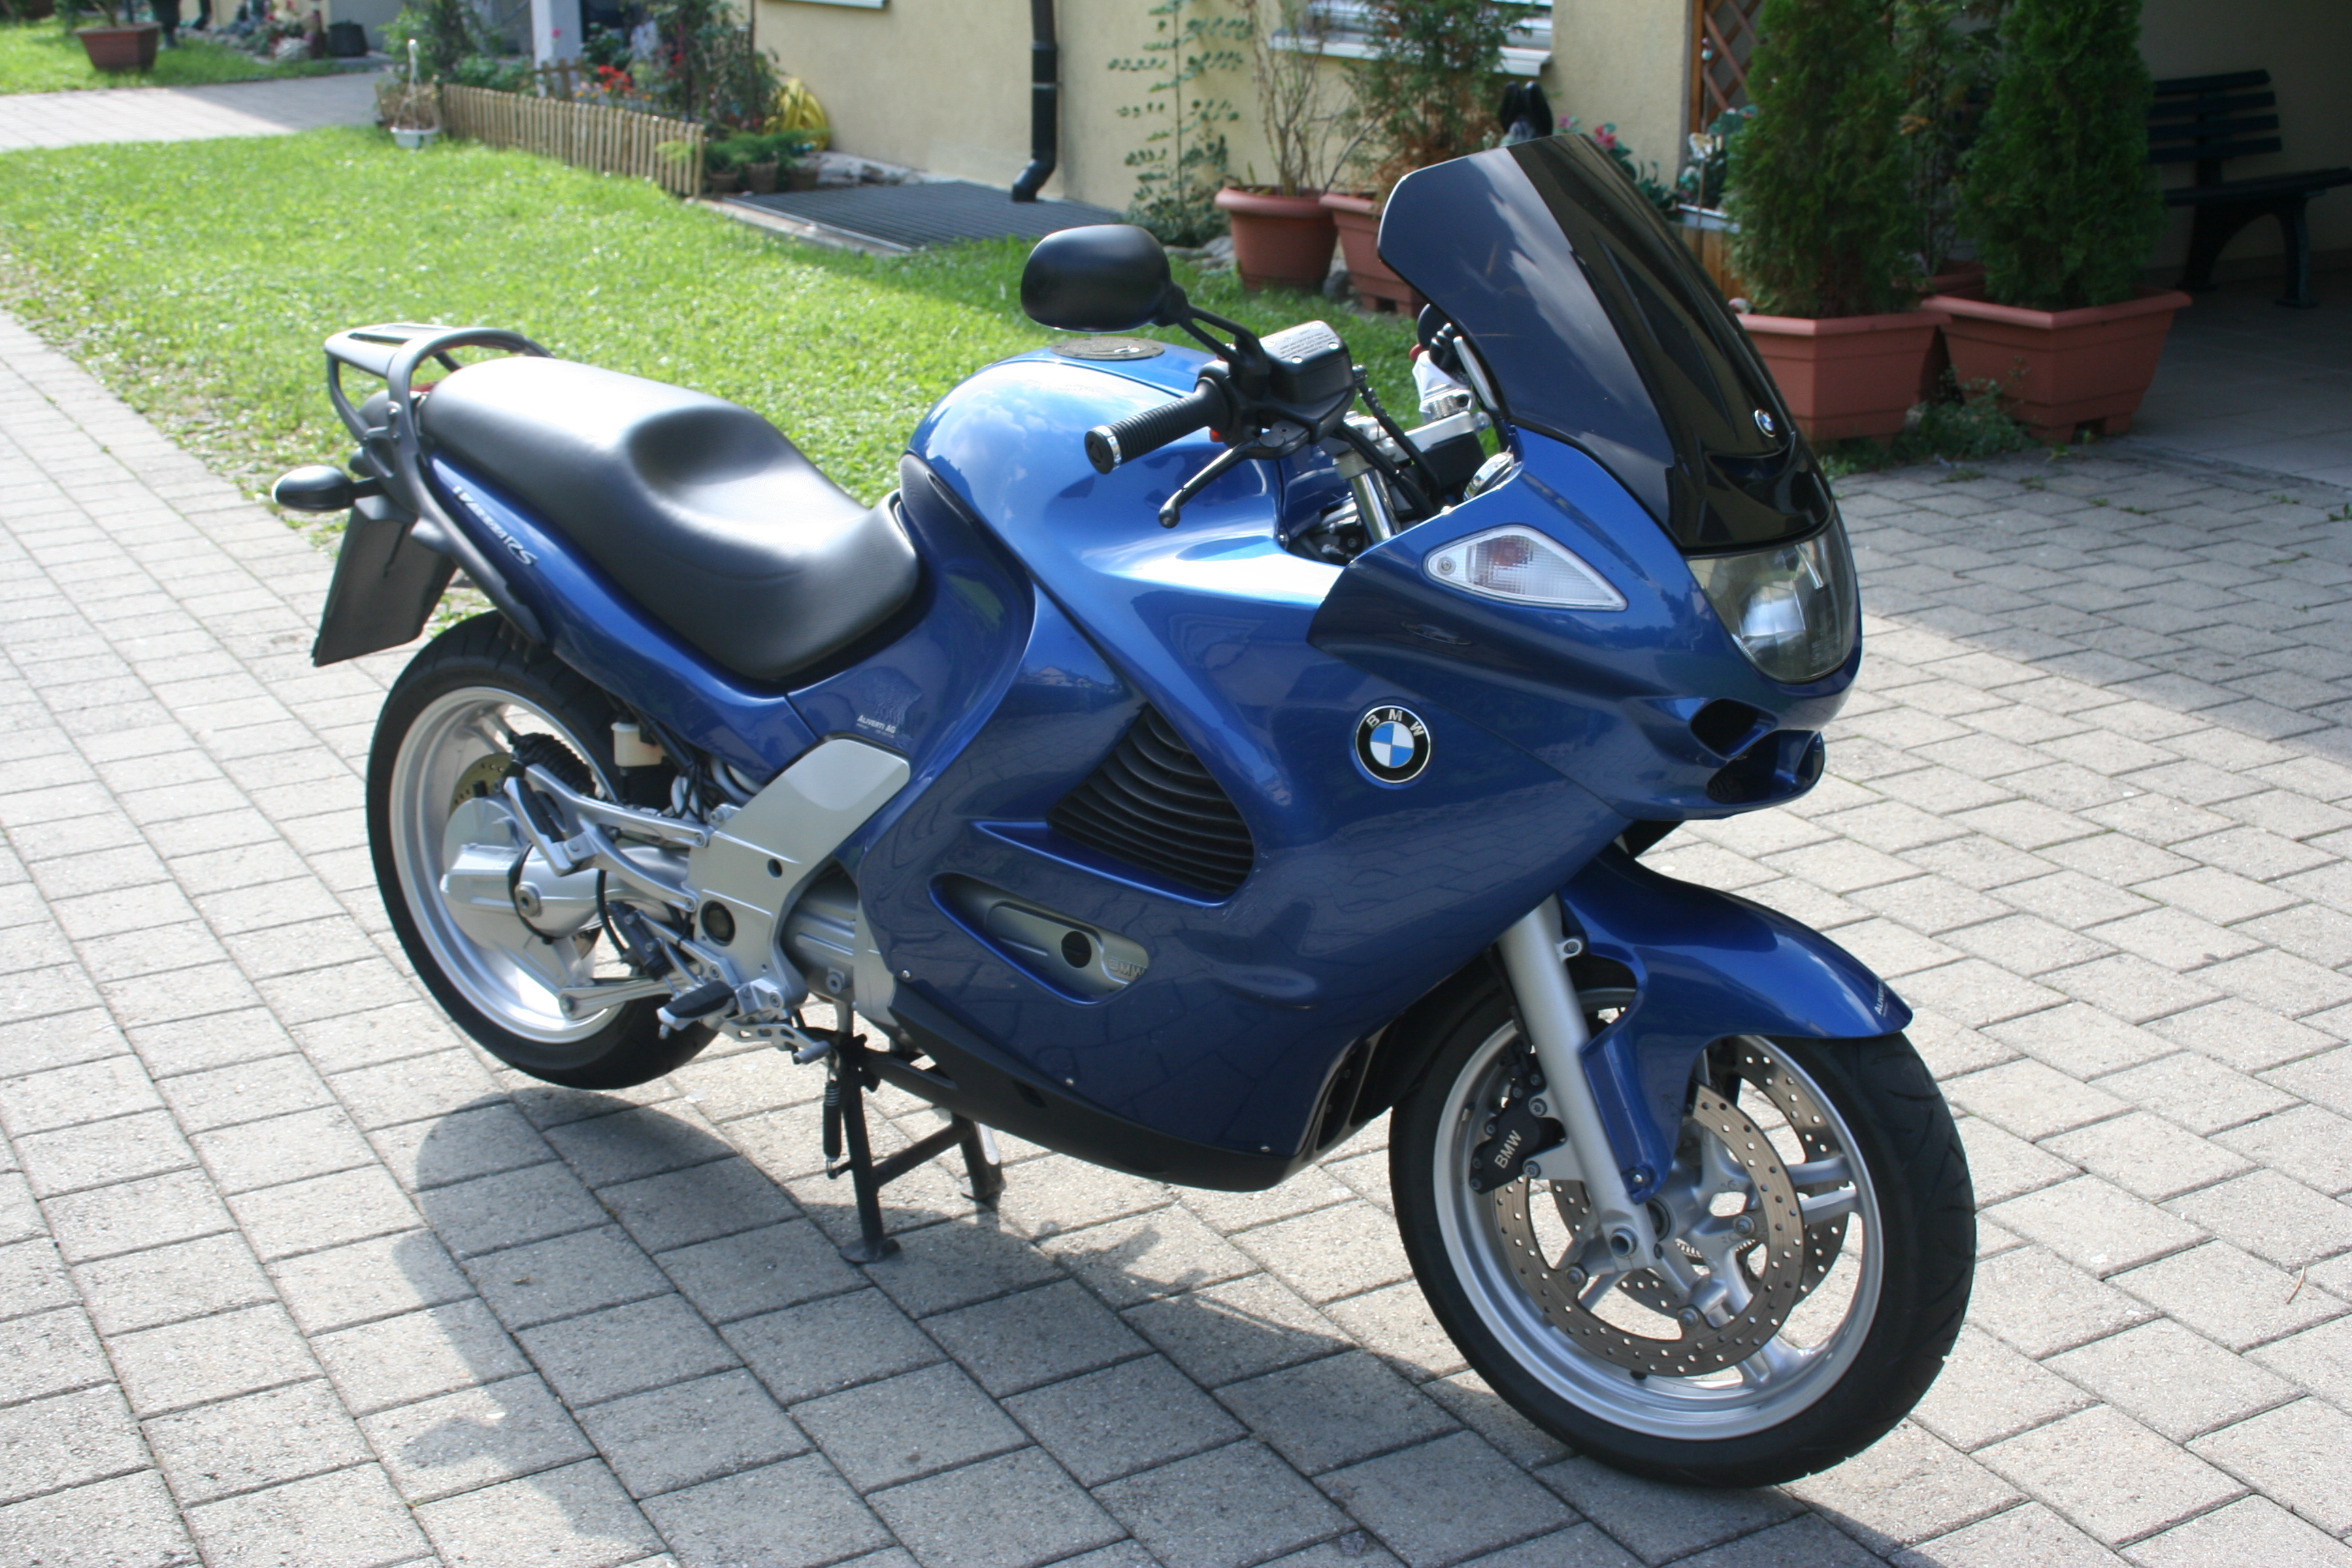 BMW K1200RS 1996 images #6087